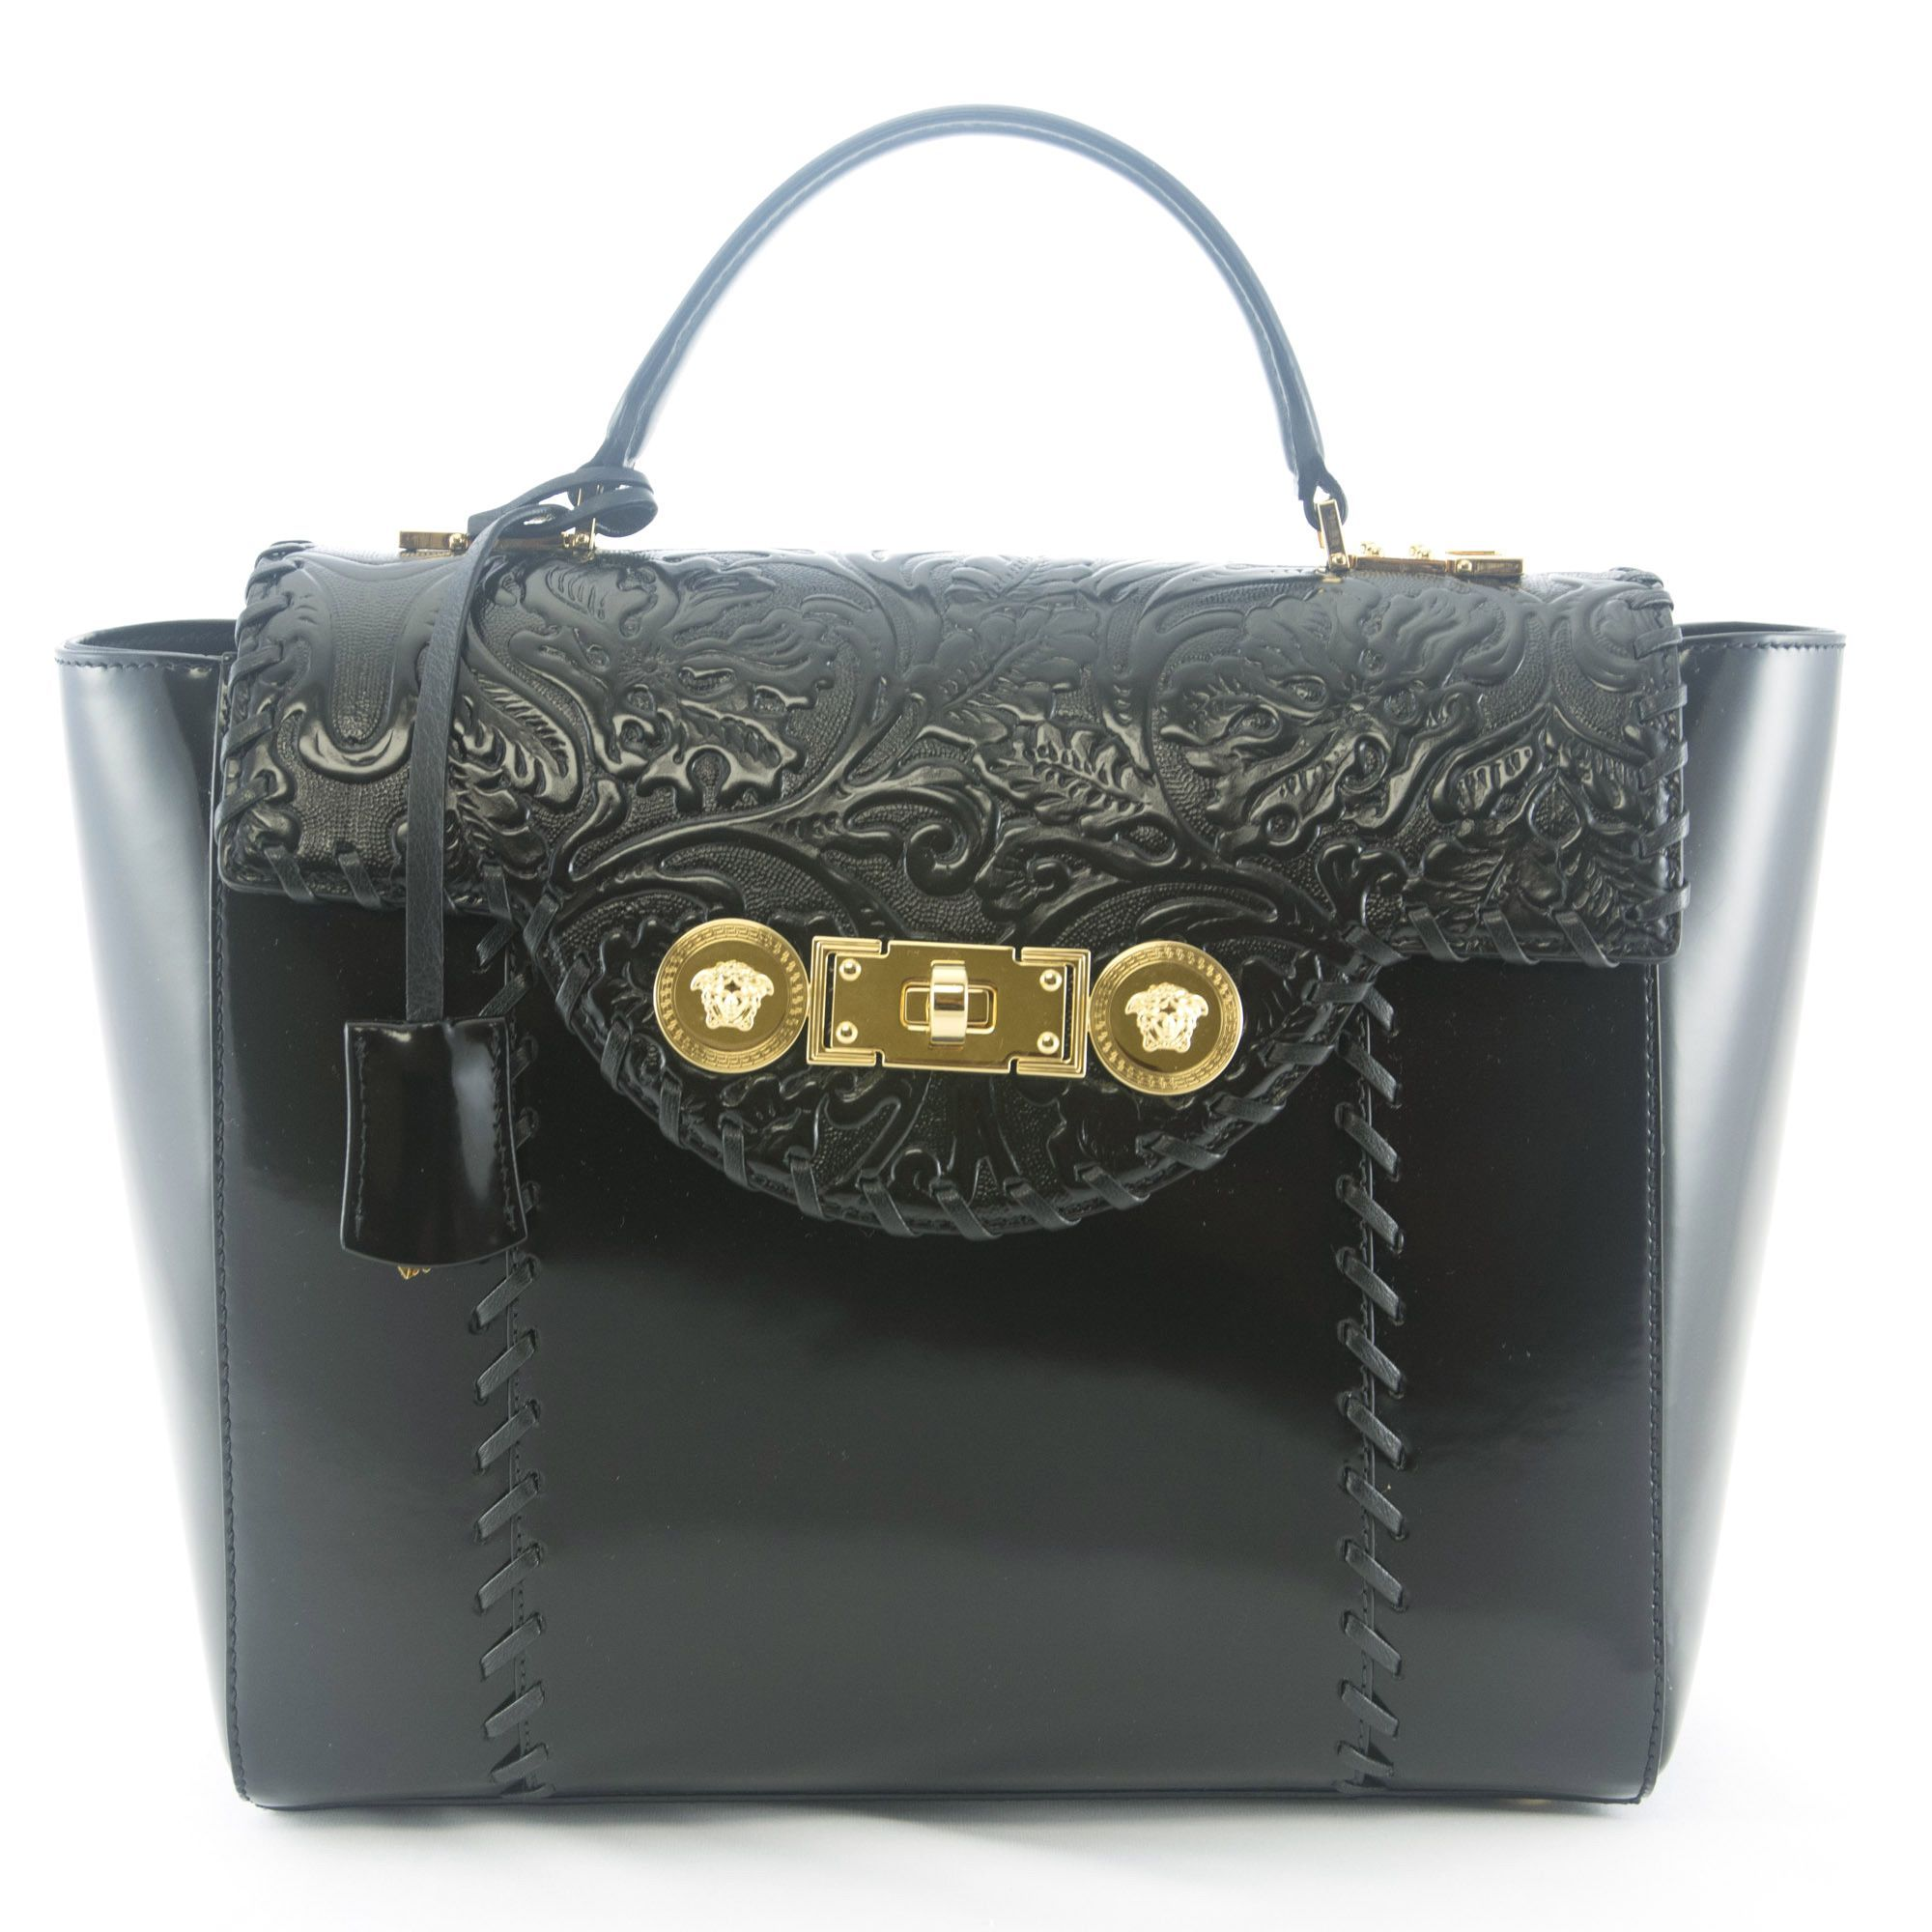 Versace Signature Lock Handbag